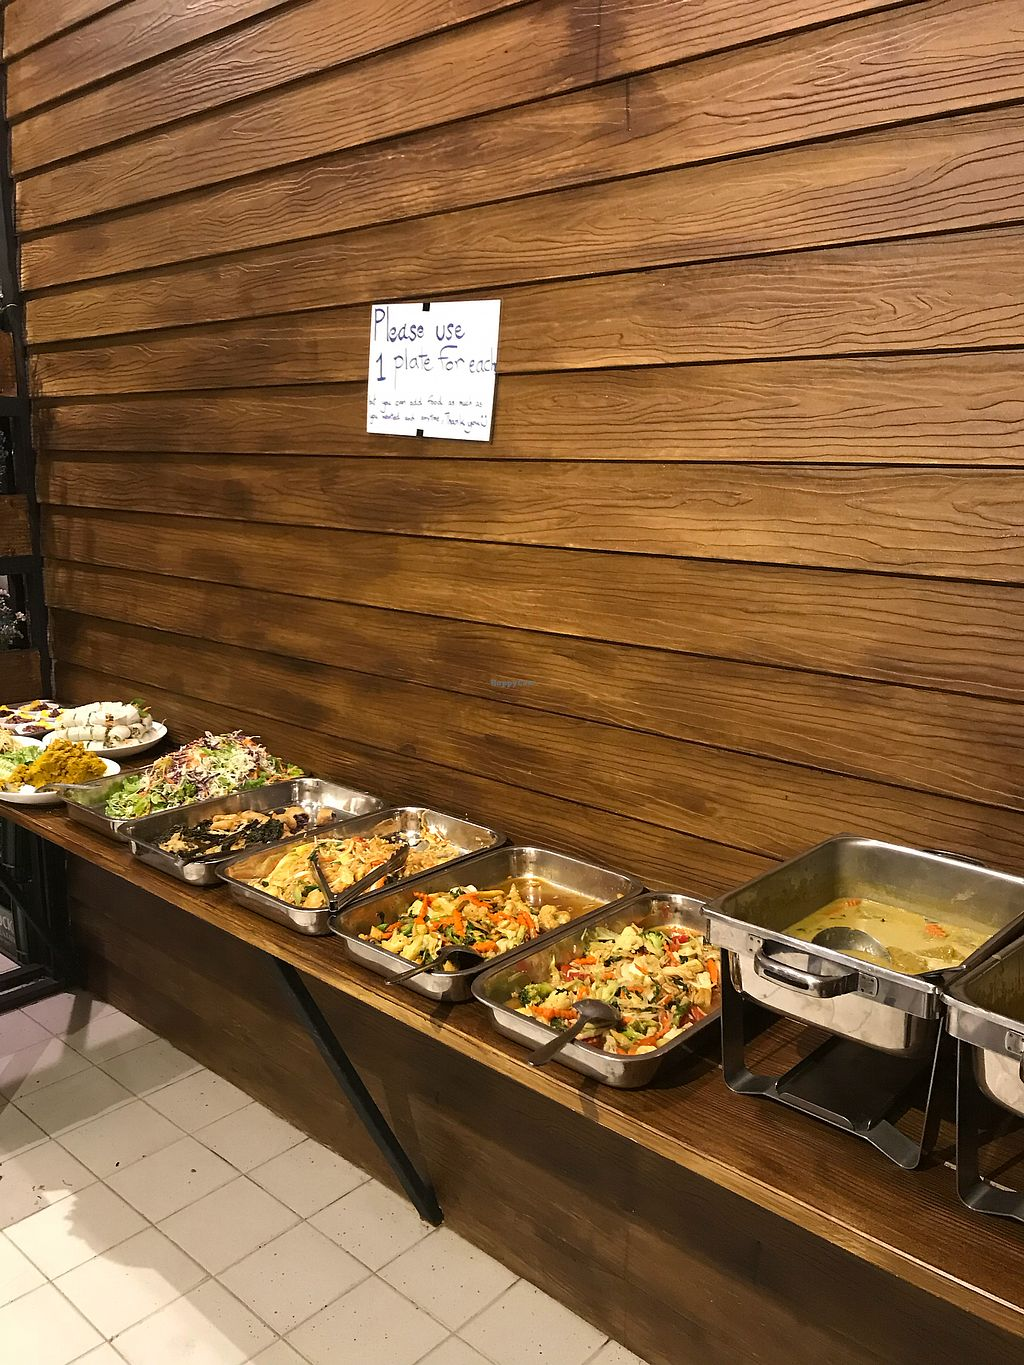 """Photo of May Kaidee's Vegetarian Restaurant  by <a href=""""/members/profile/JessiJune"""">JessiJune</a> <br/>Saturday night buffet 150baht! <br/> April 21, 2018  - <a href='/contact/abuse/image/13082/389029'>Report</a>"""